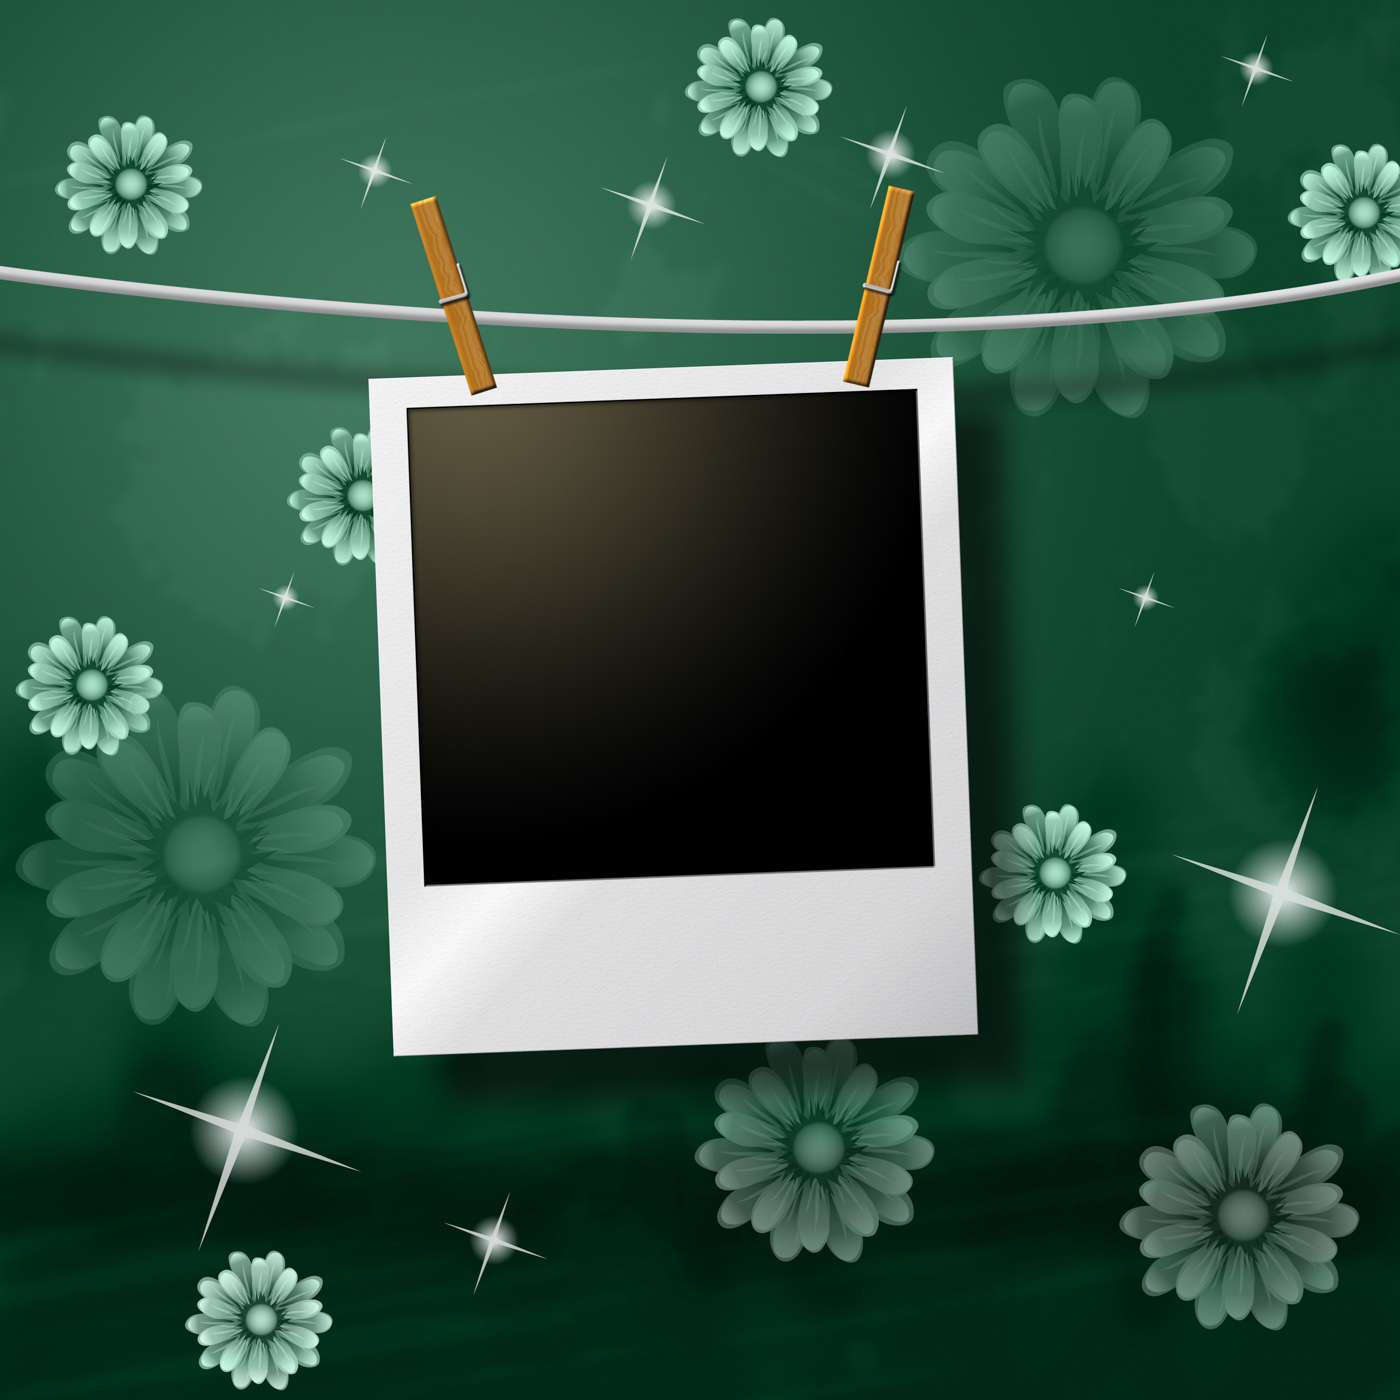 Photo Frames Indicates Text Space And Background, Snapshot, Flowers, Picture, Photography, HQ Photo